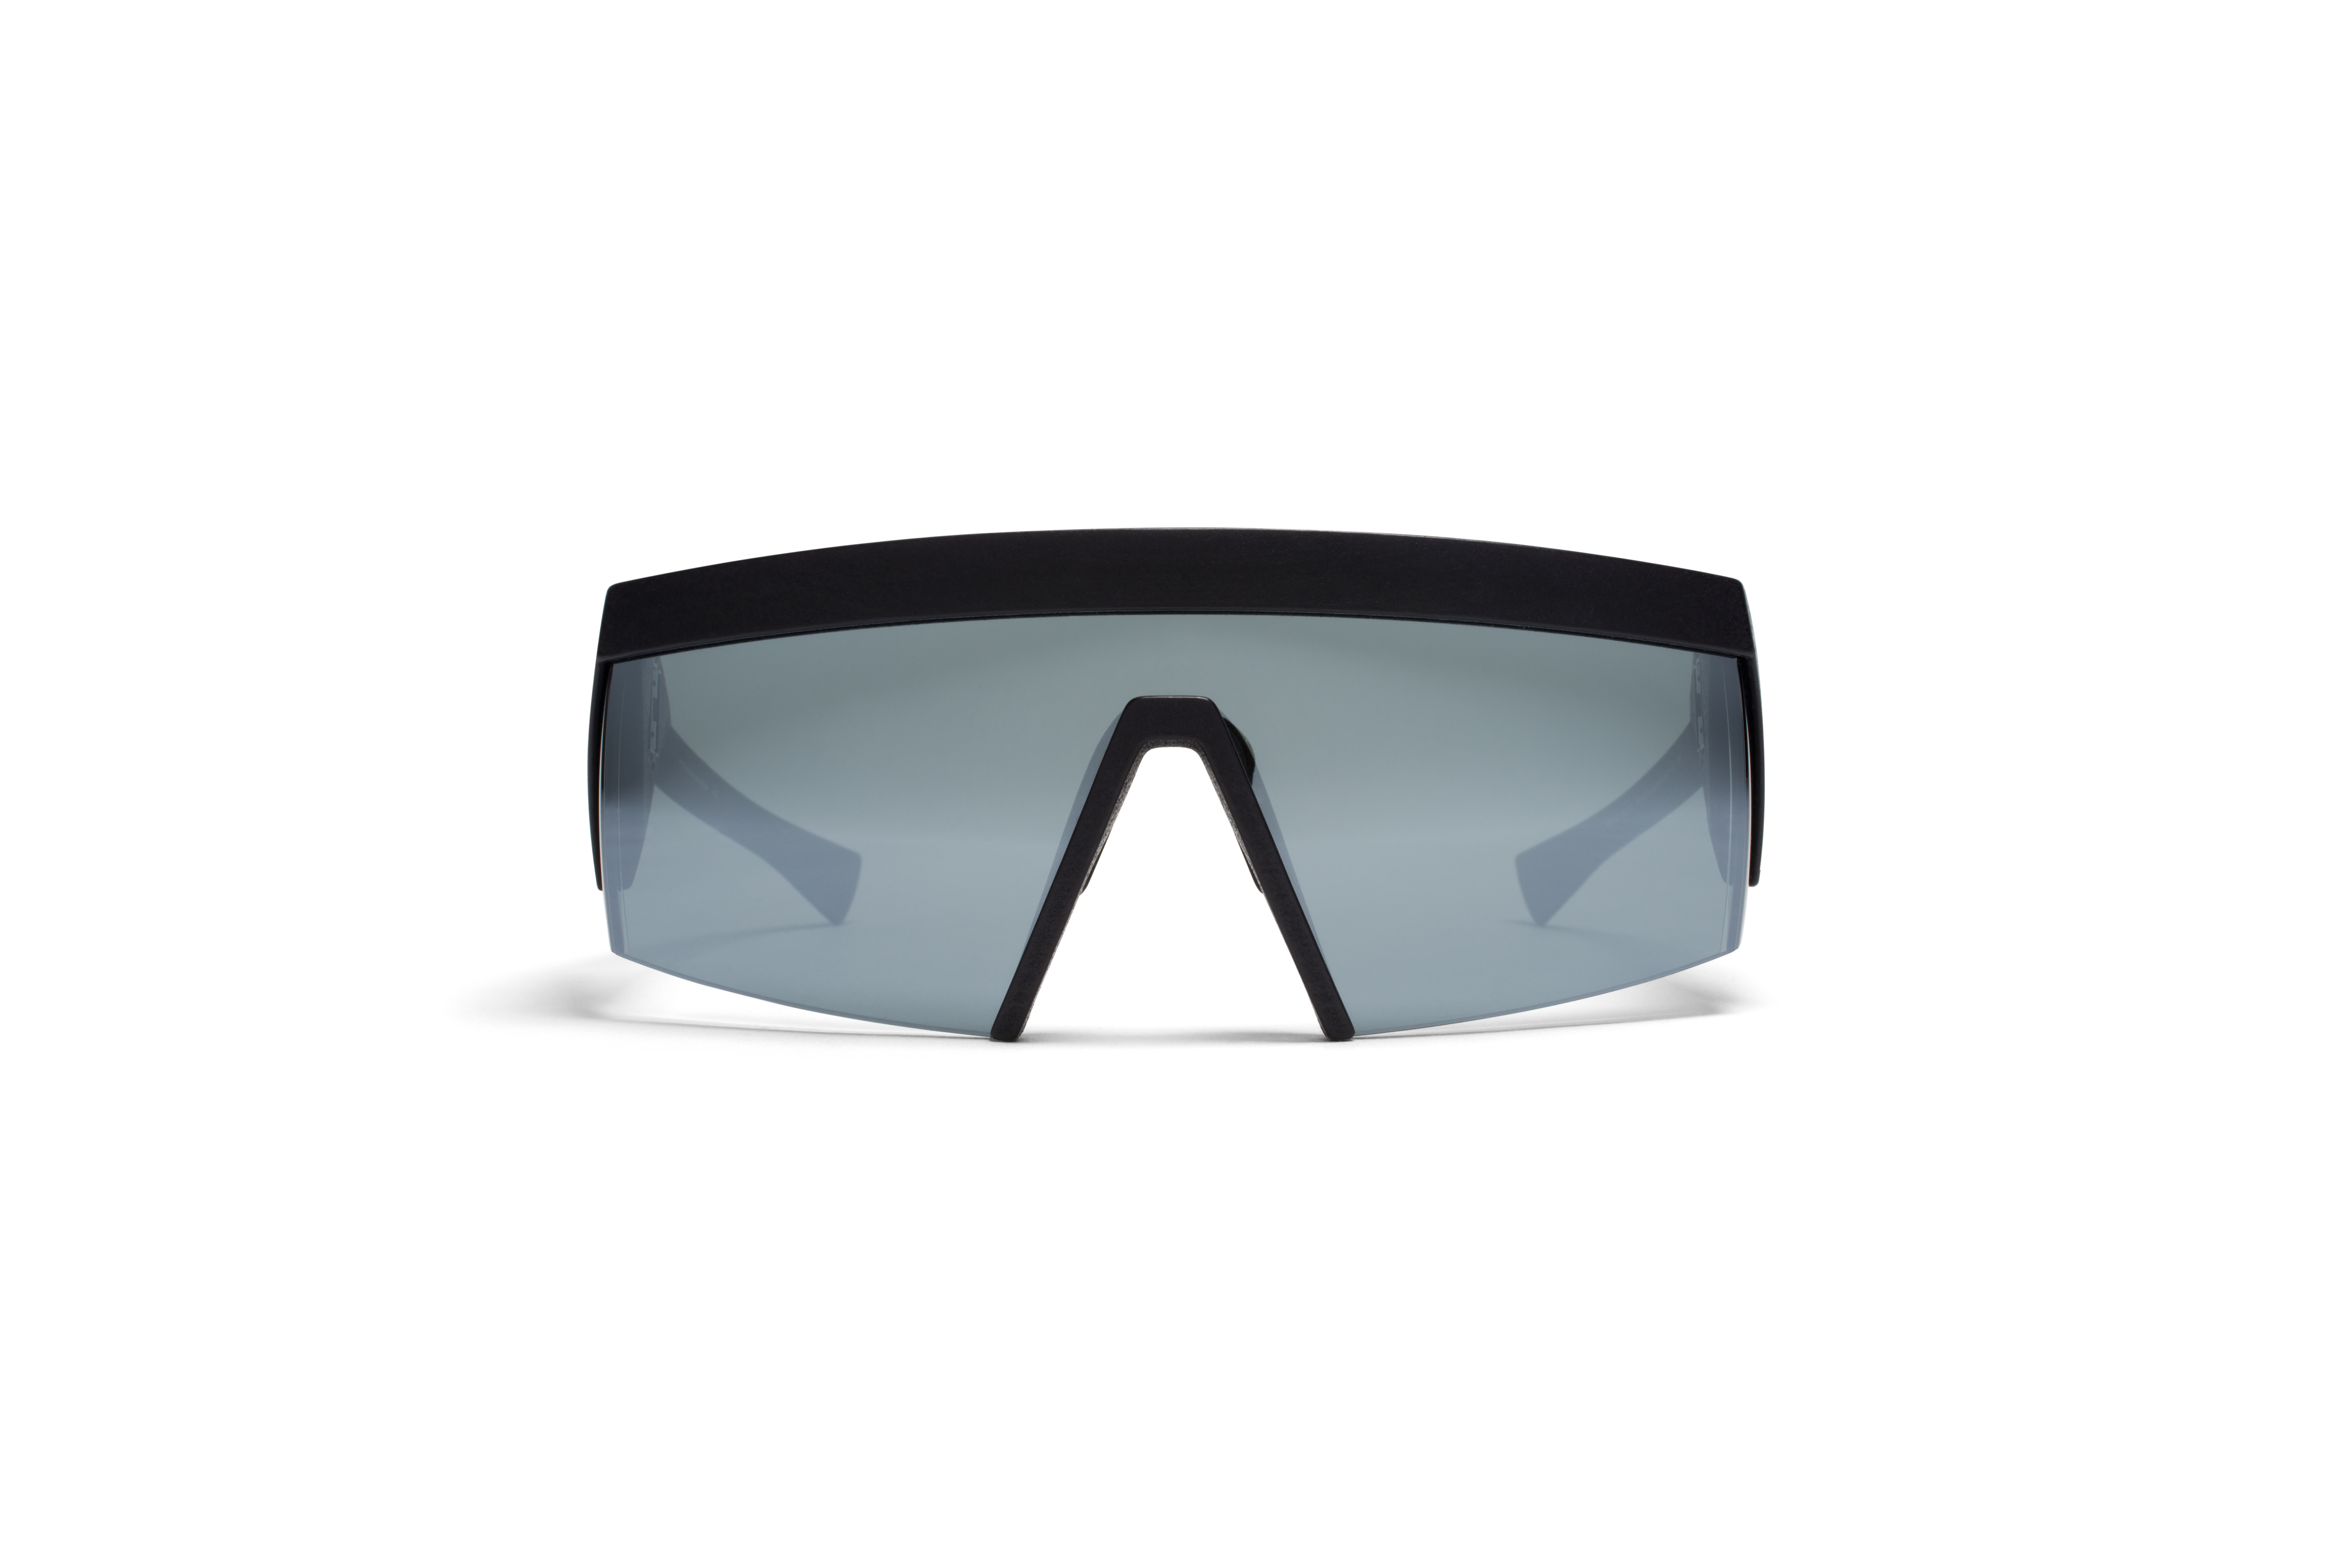 MYKITA Bw Sun Vice Mm10 Black Blue Lateral Silver5707c30b4c25e